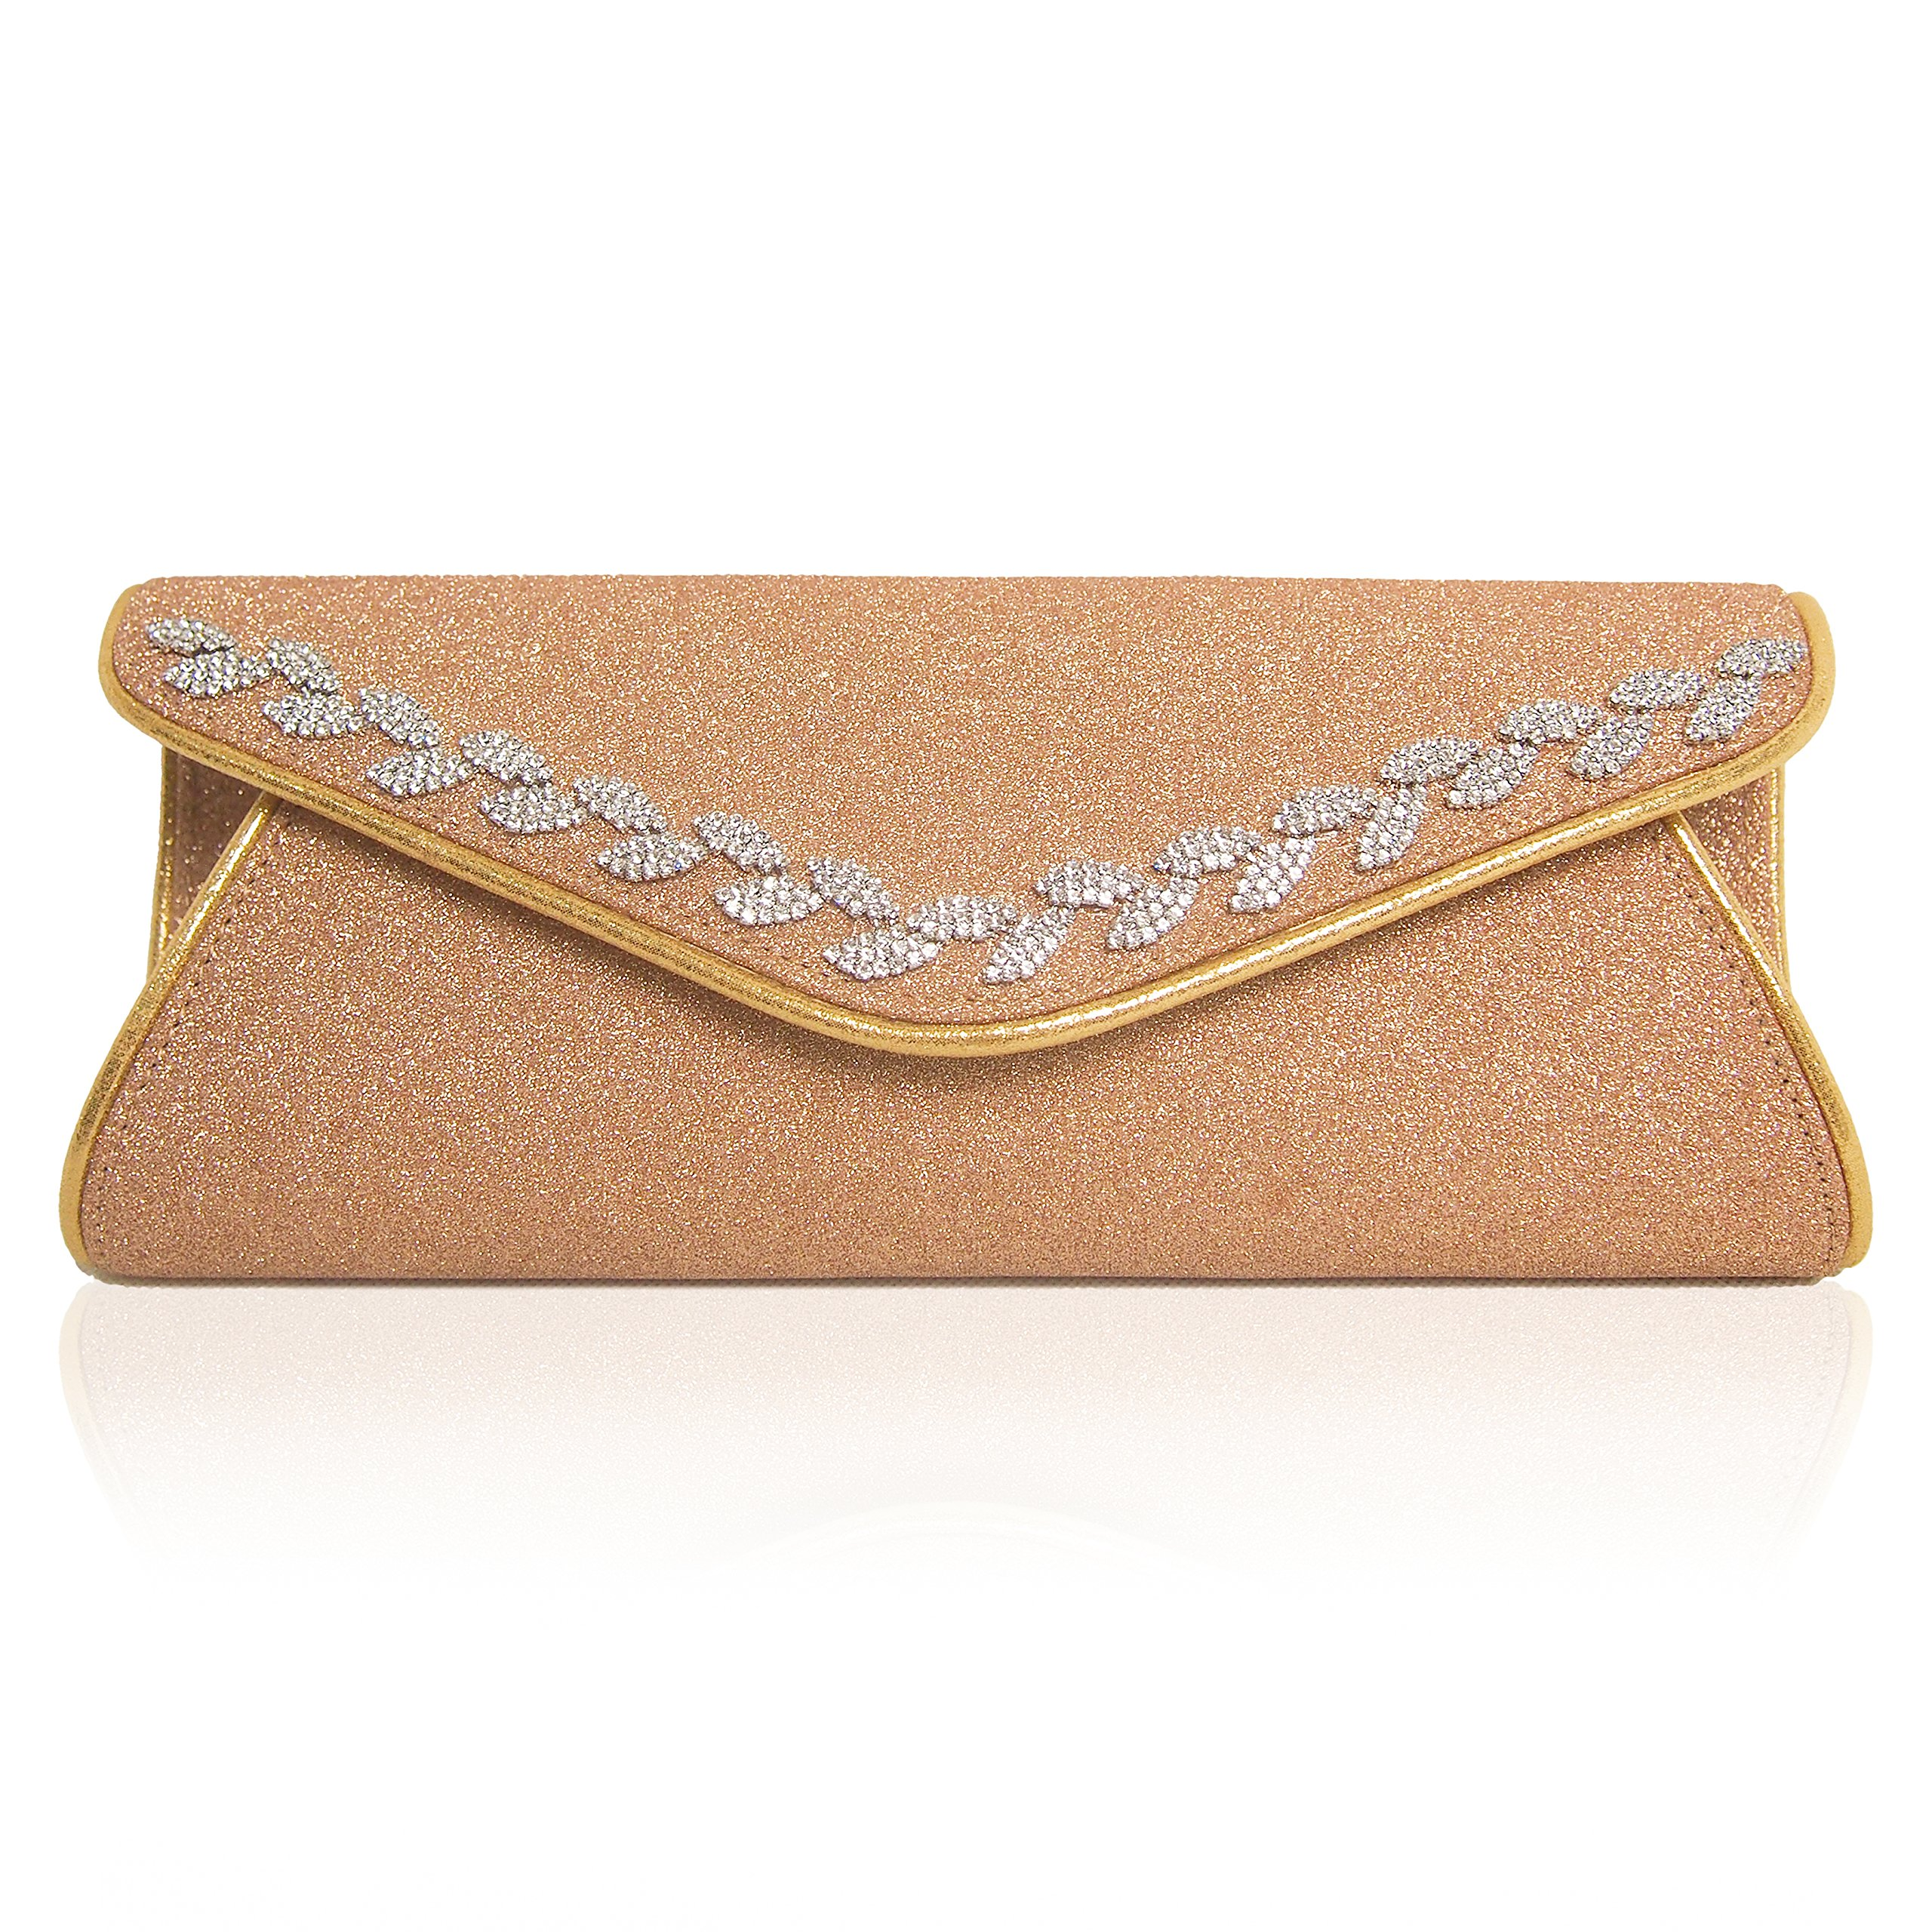 TOIHSUAN women's rhinestones sparkly evening cluthes bags for wedding-with shoulder strap (Champagne gold)